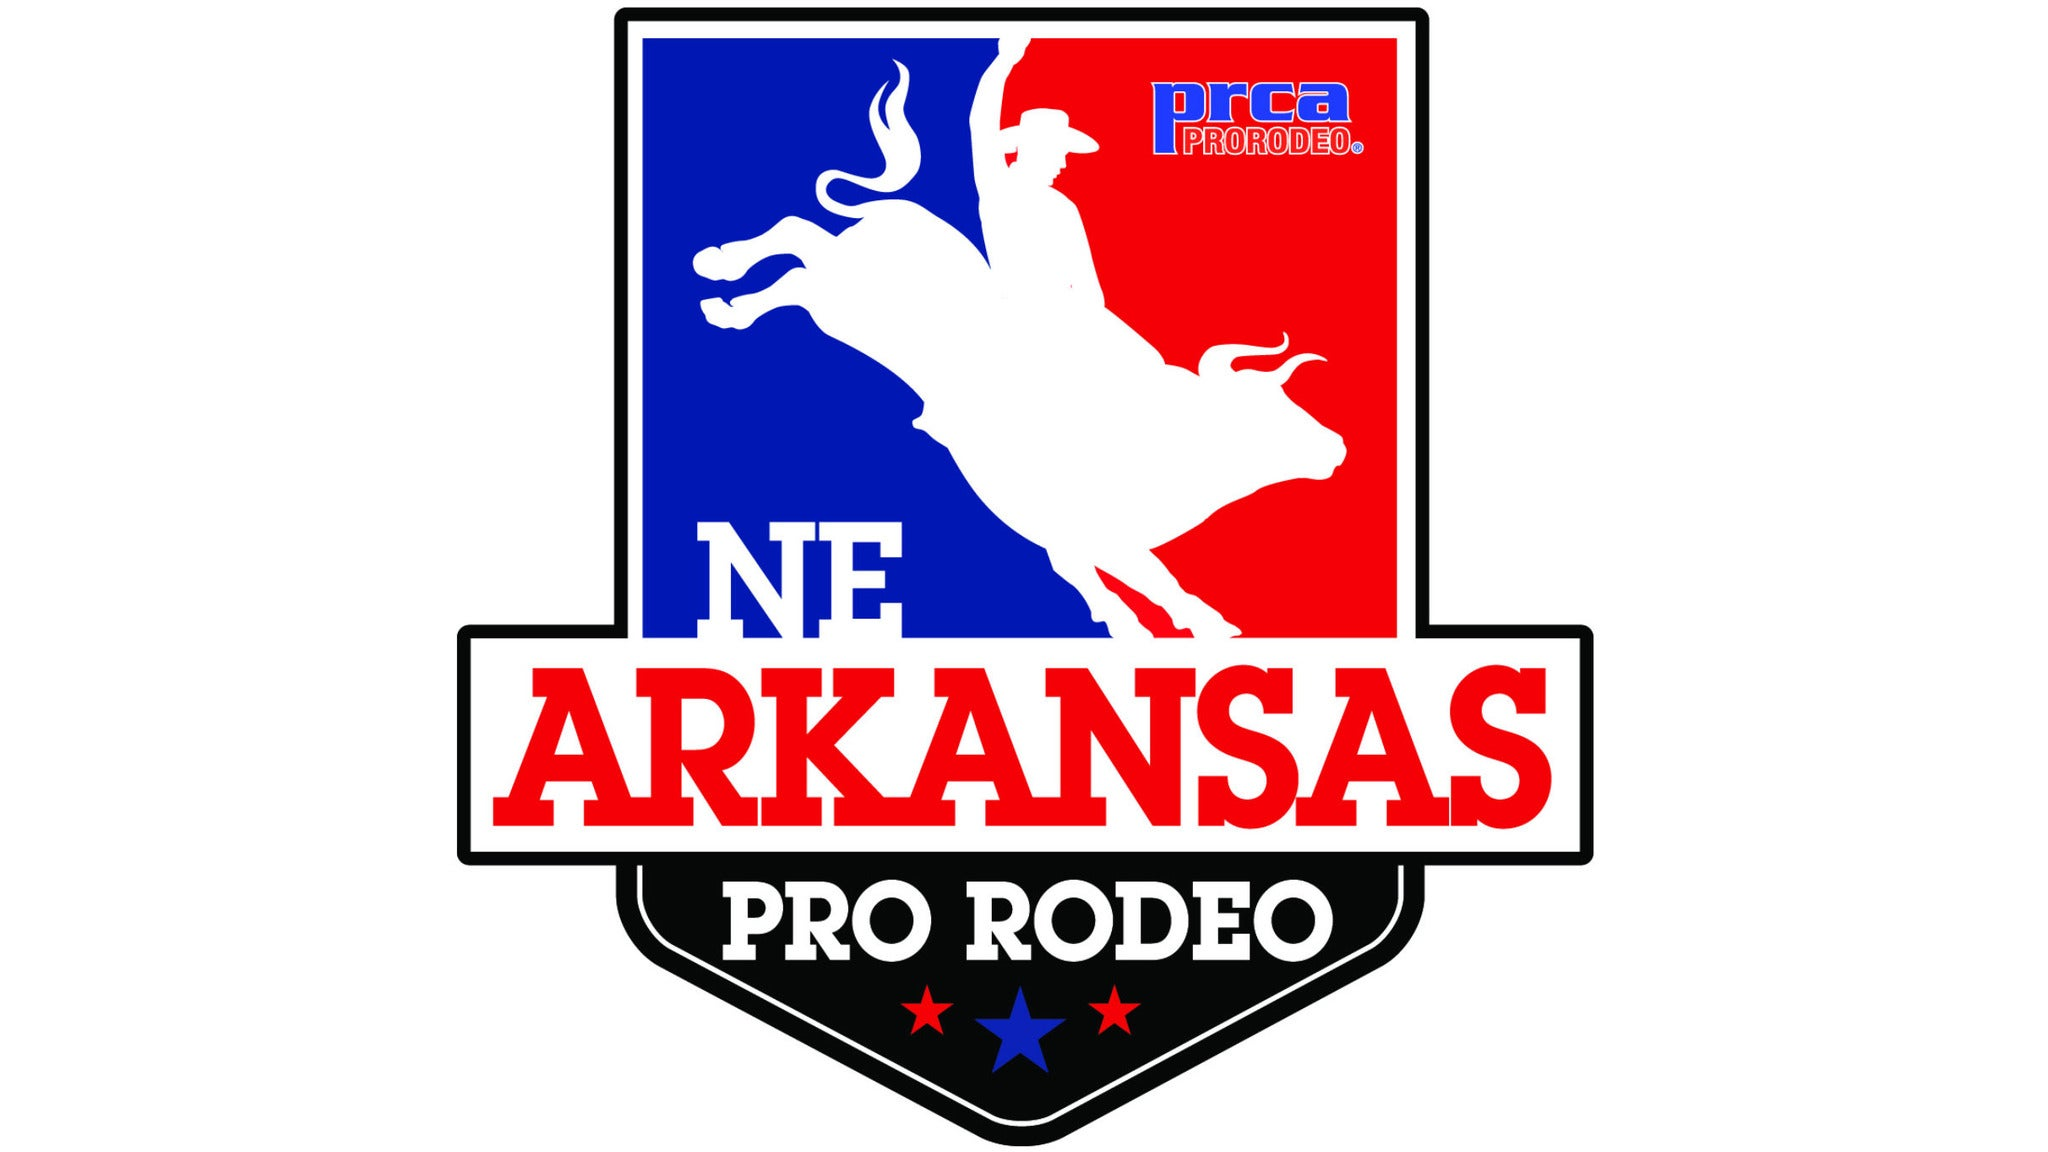 NE Arkansas Pro Rodeo at Convocation Center Jonesboro